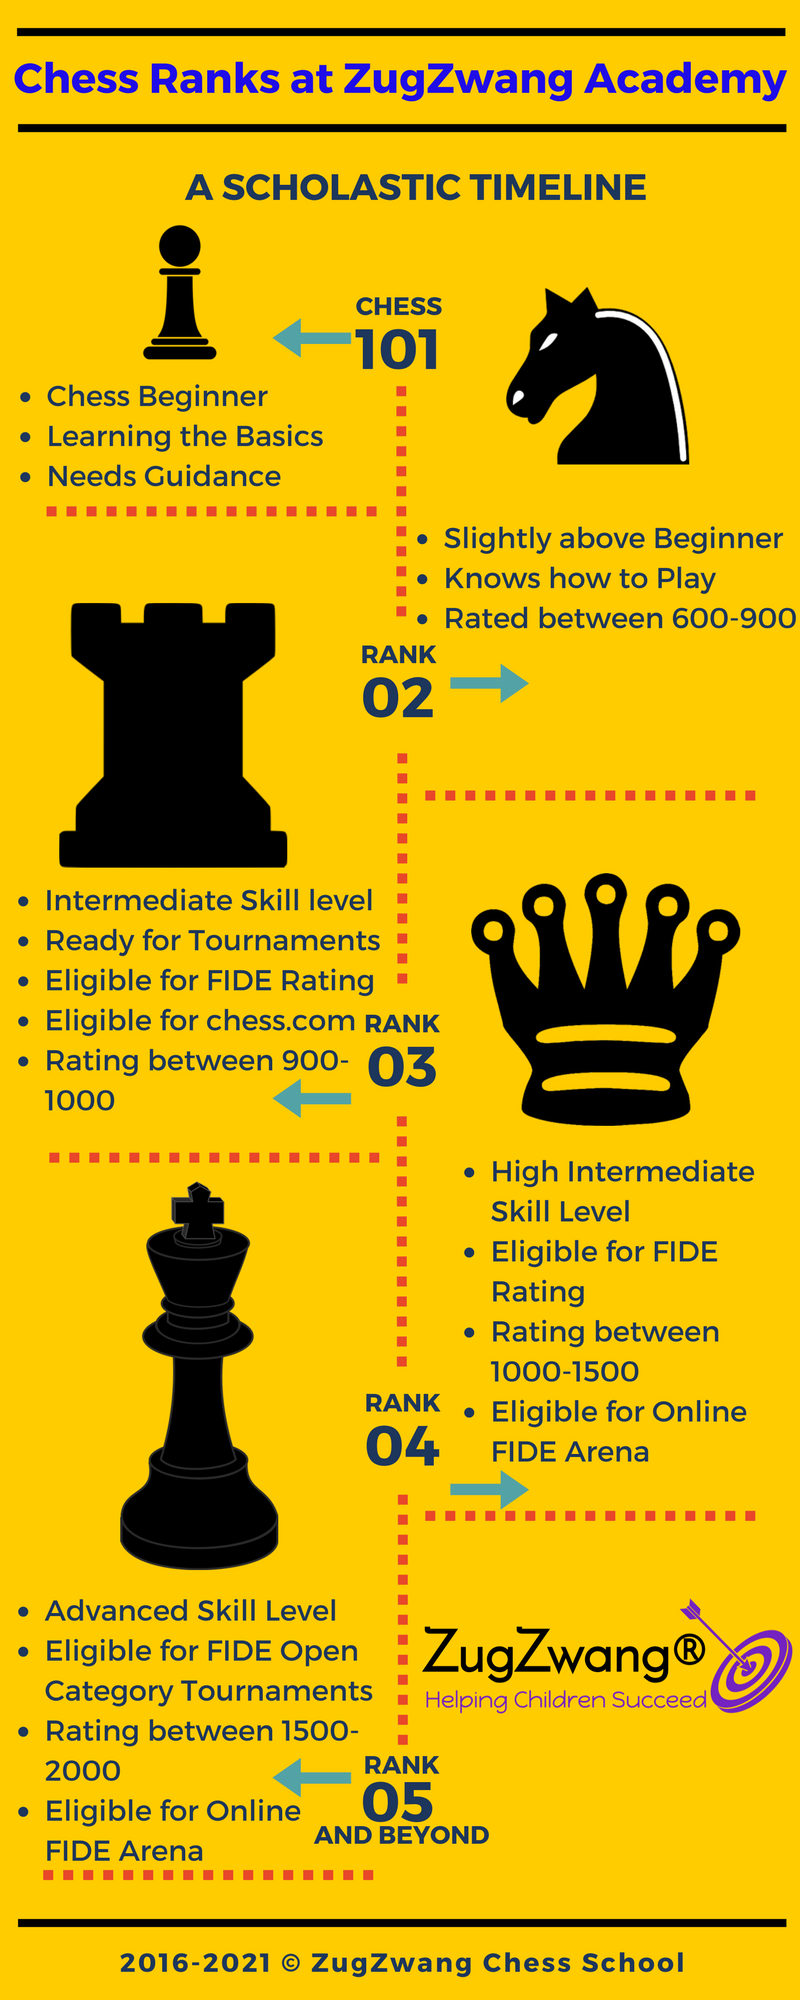 chess-ranks-zugzwang-academy